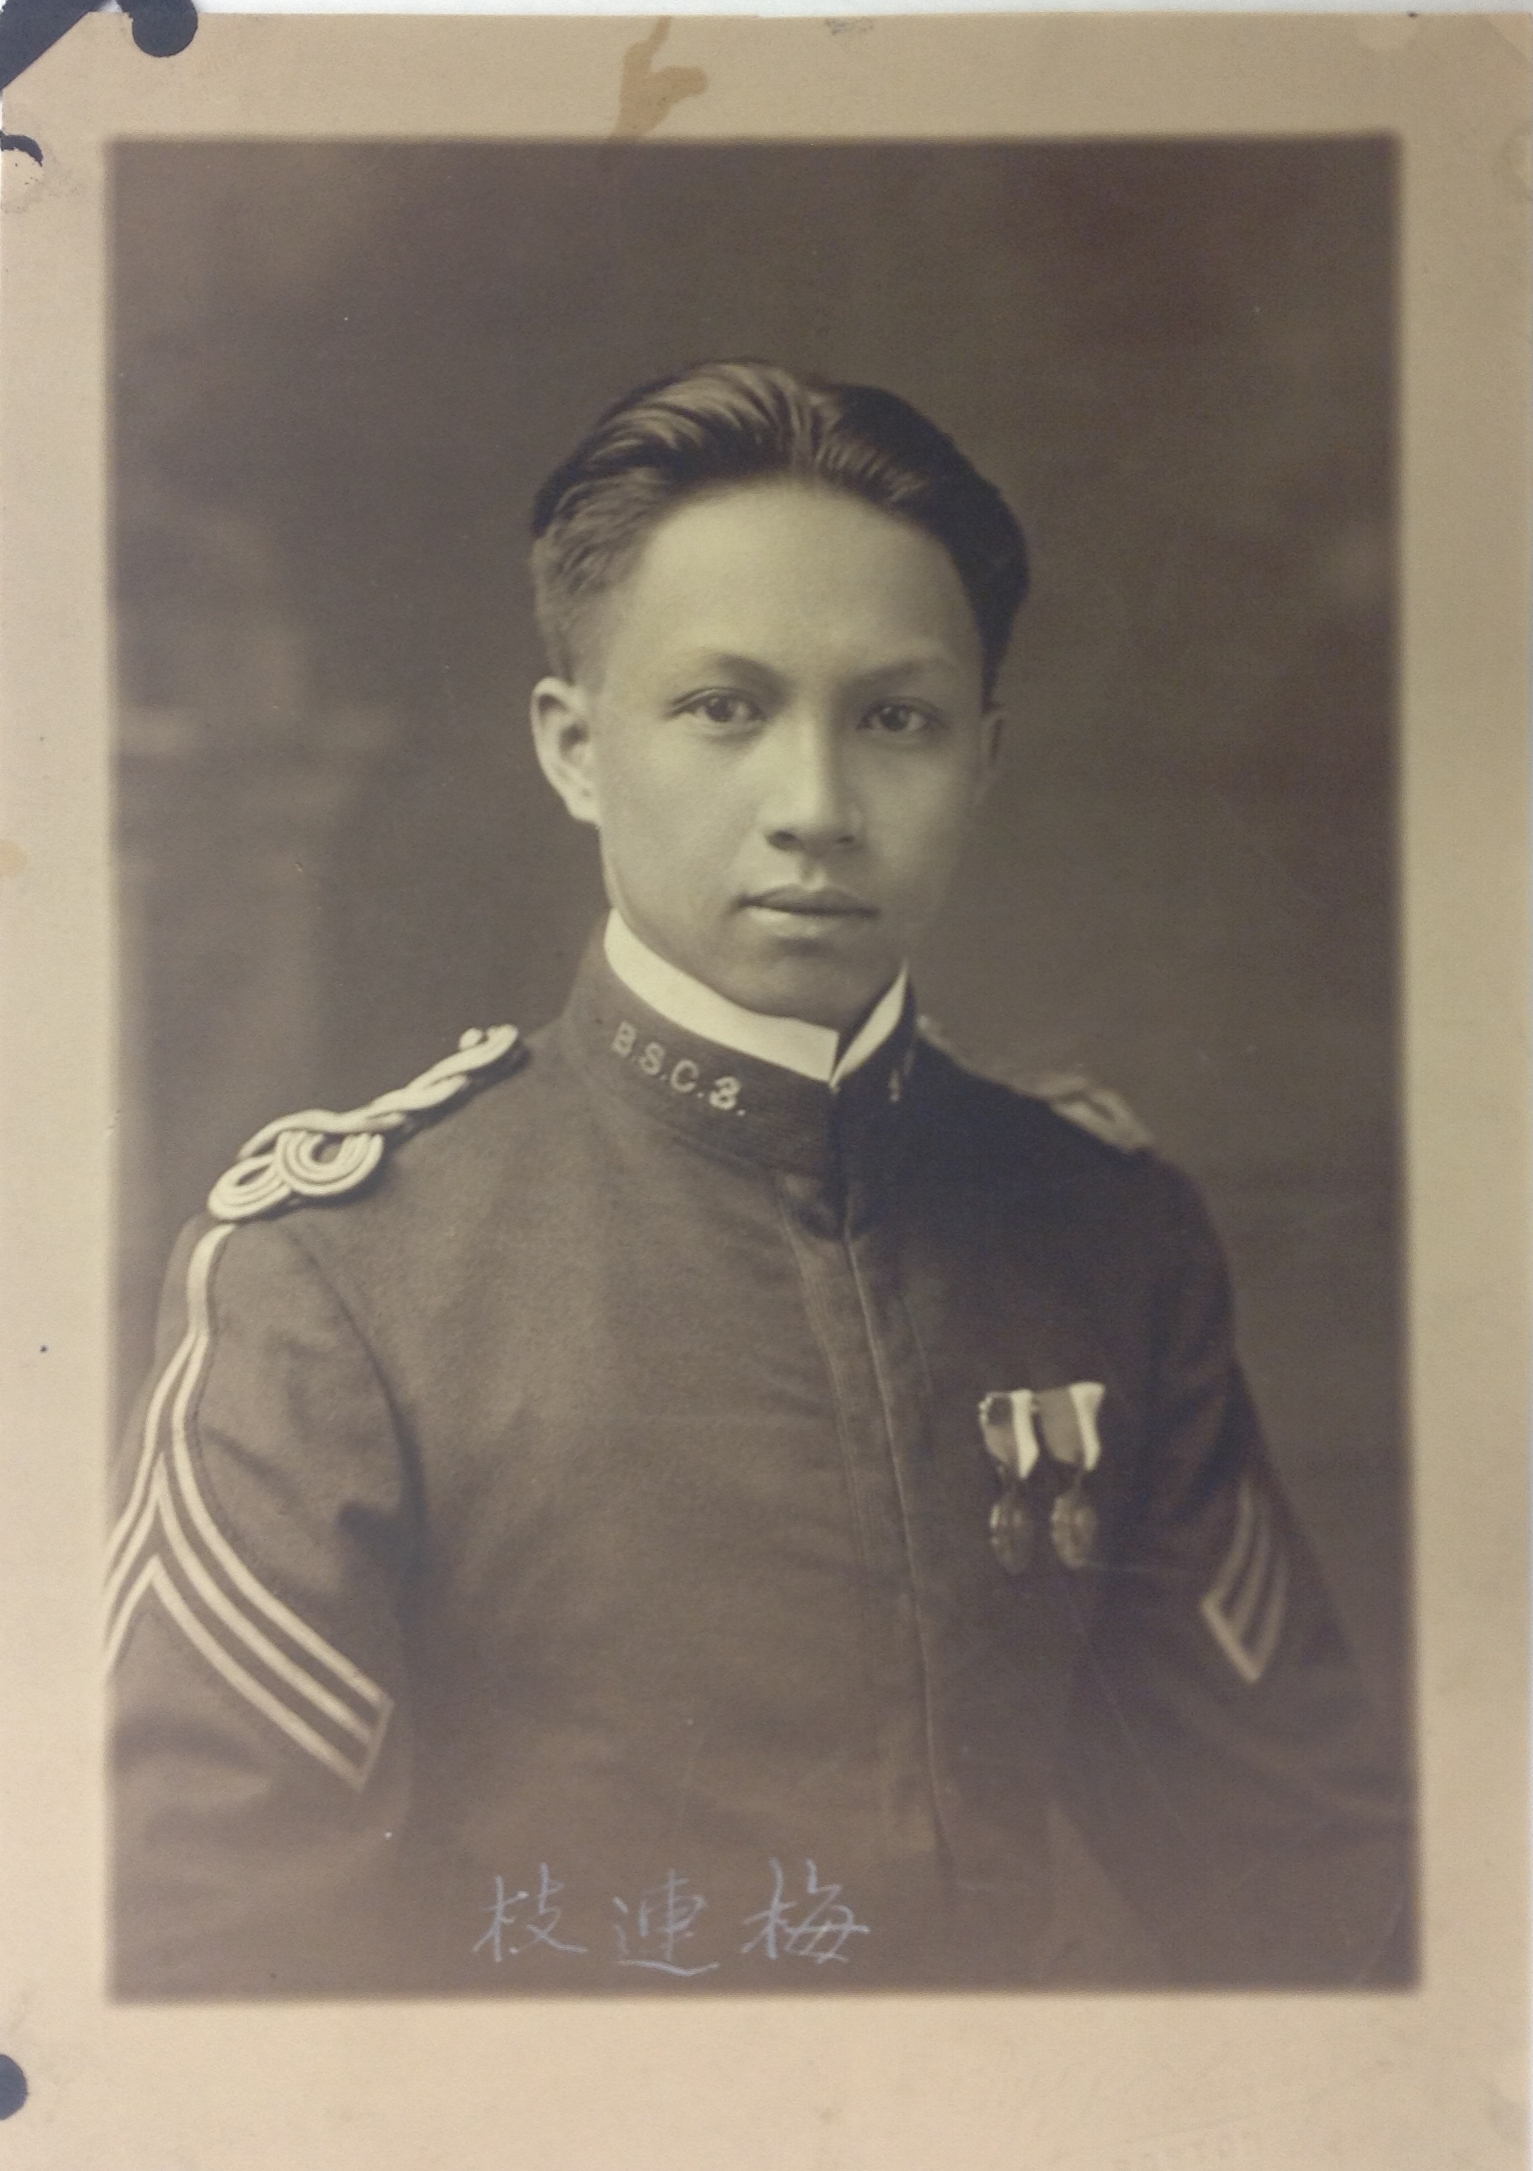 William Ding Moy ca. 1915 in Boston School Cadets uniform. Image courtesy Beverly Wing.